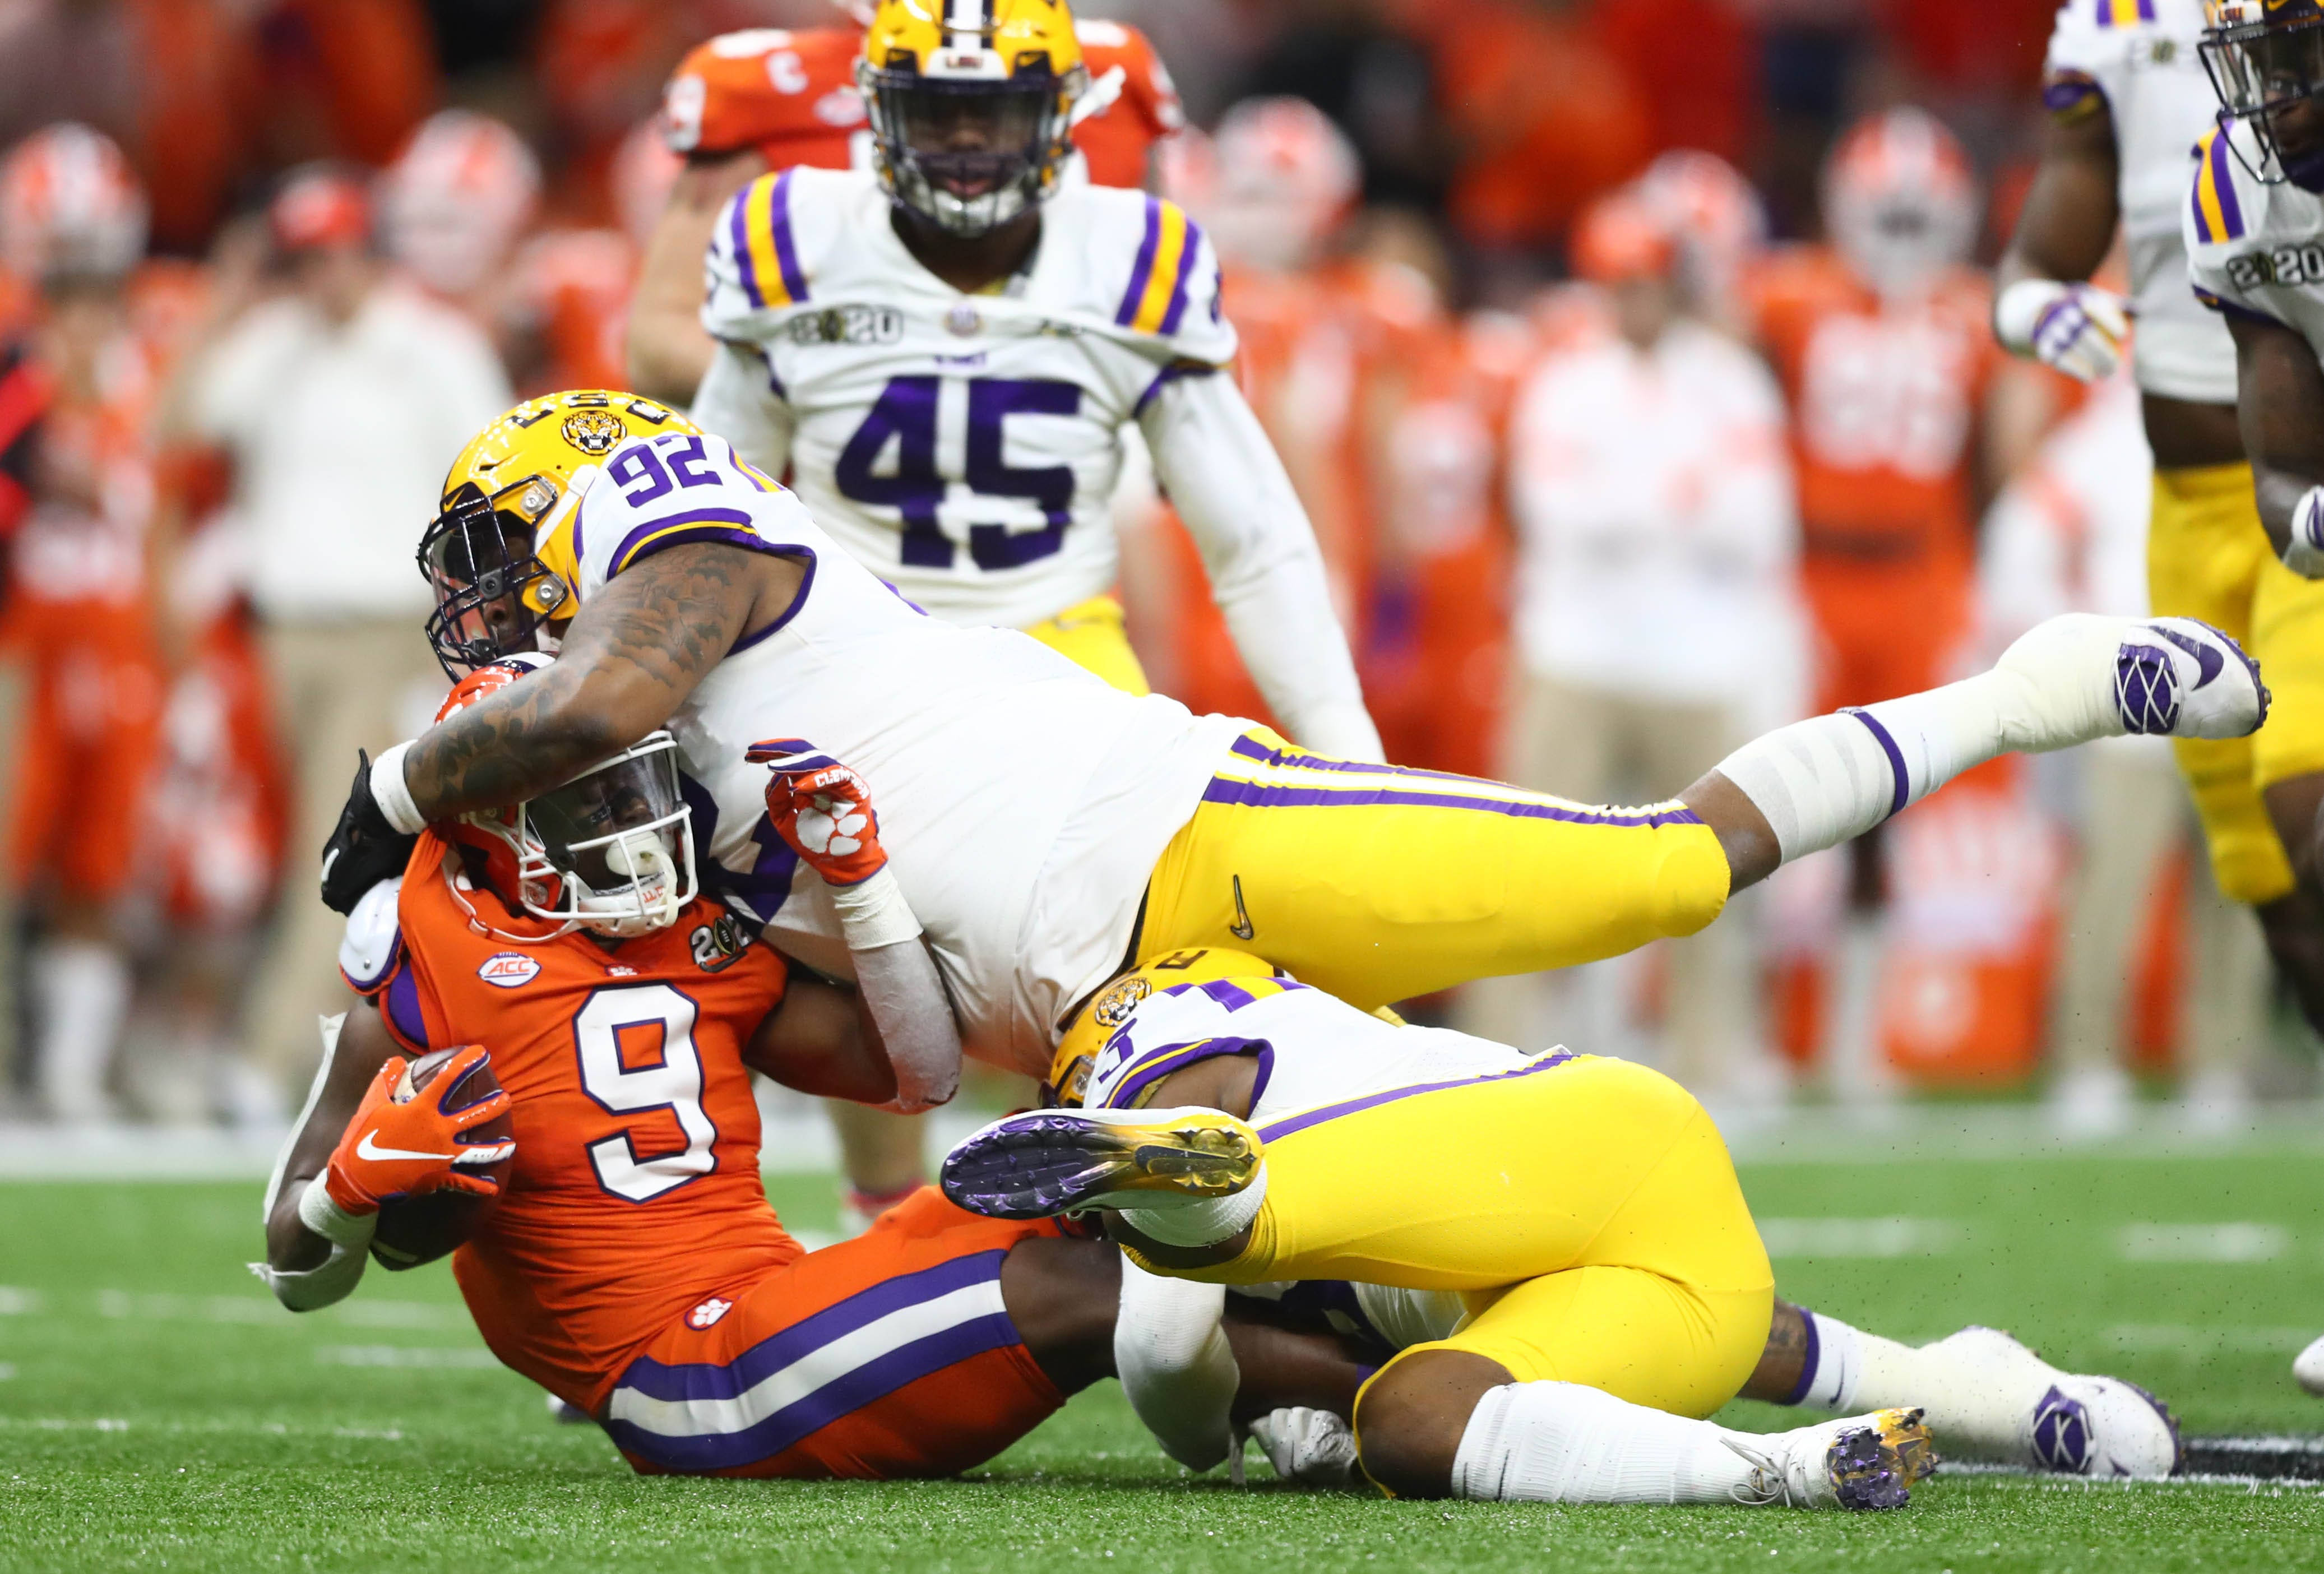 LSU s Neil Farrell Jr. opts out after COVID-19 hits family hard as season prospects dim